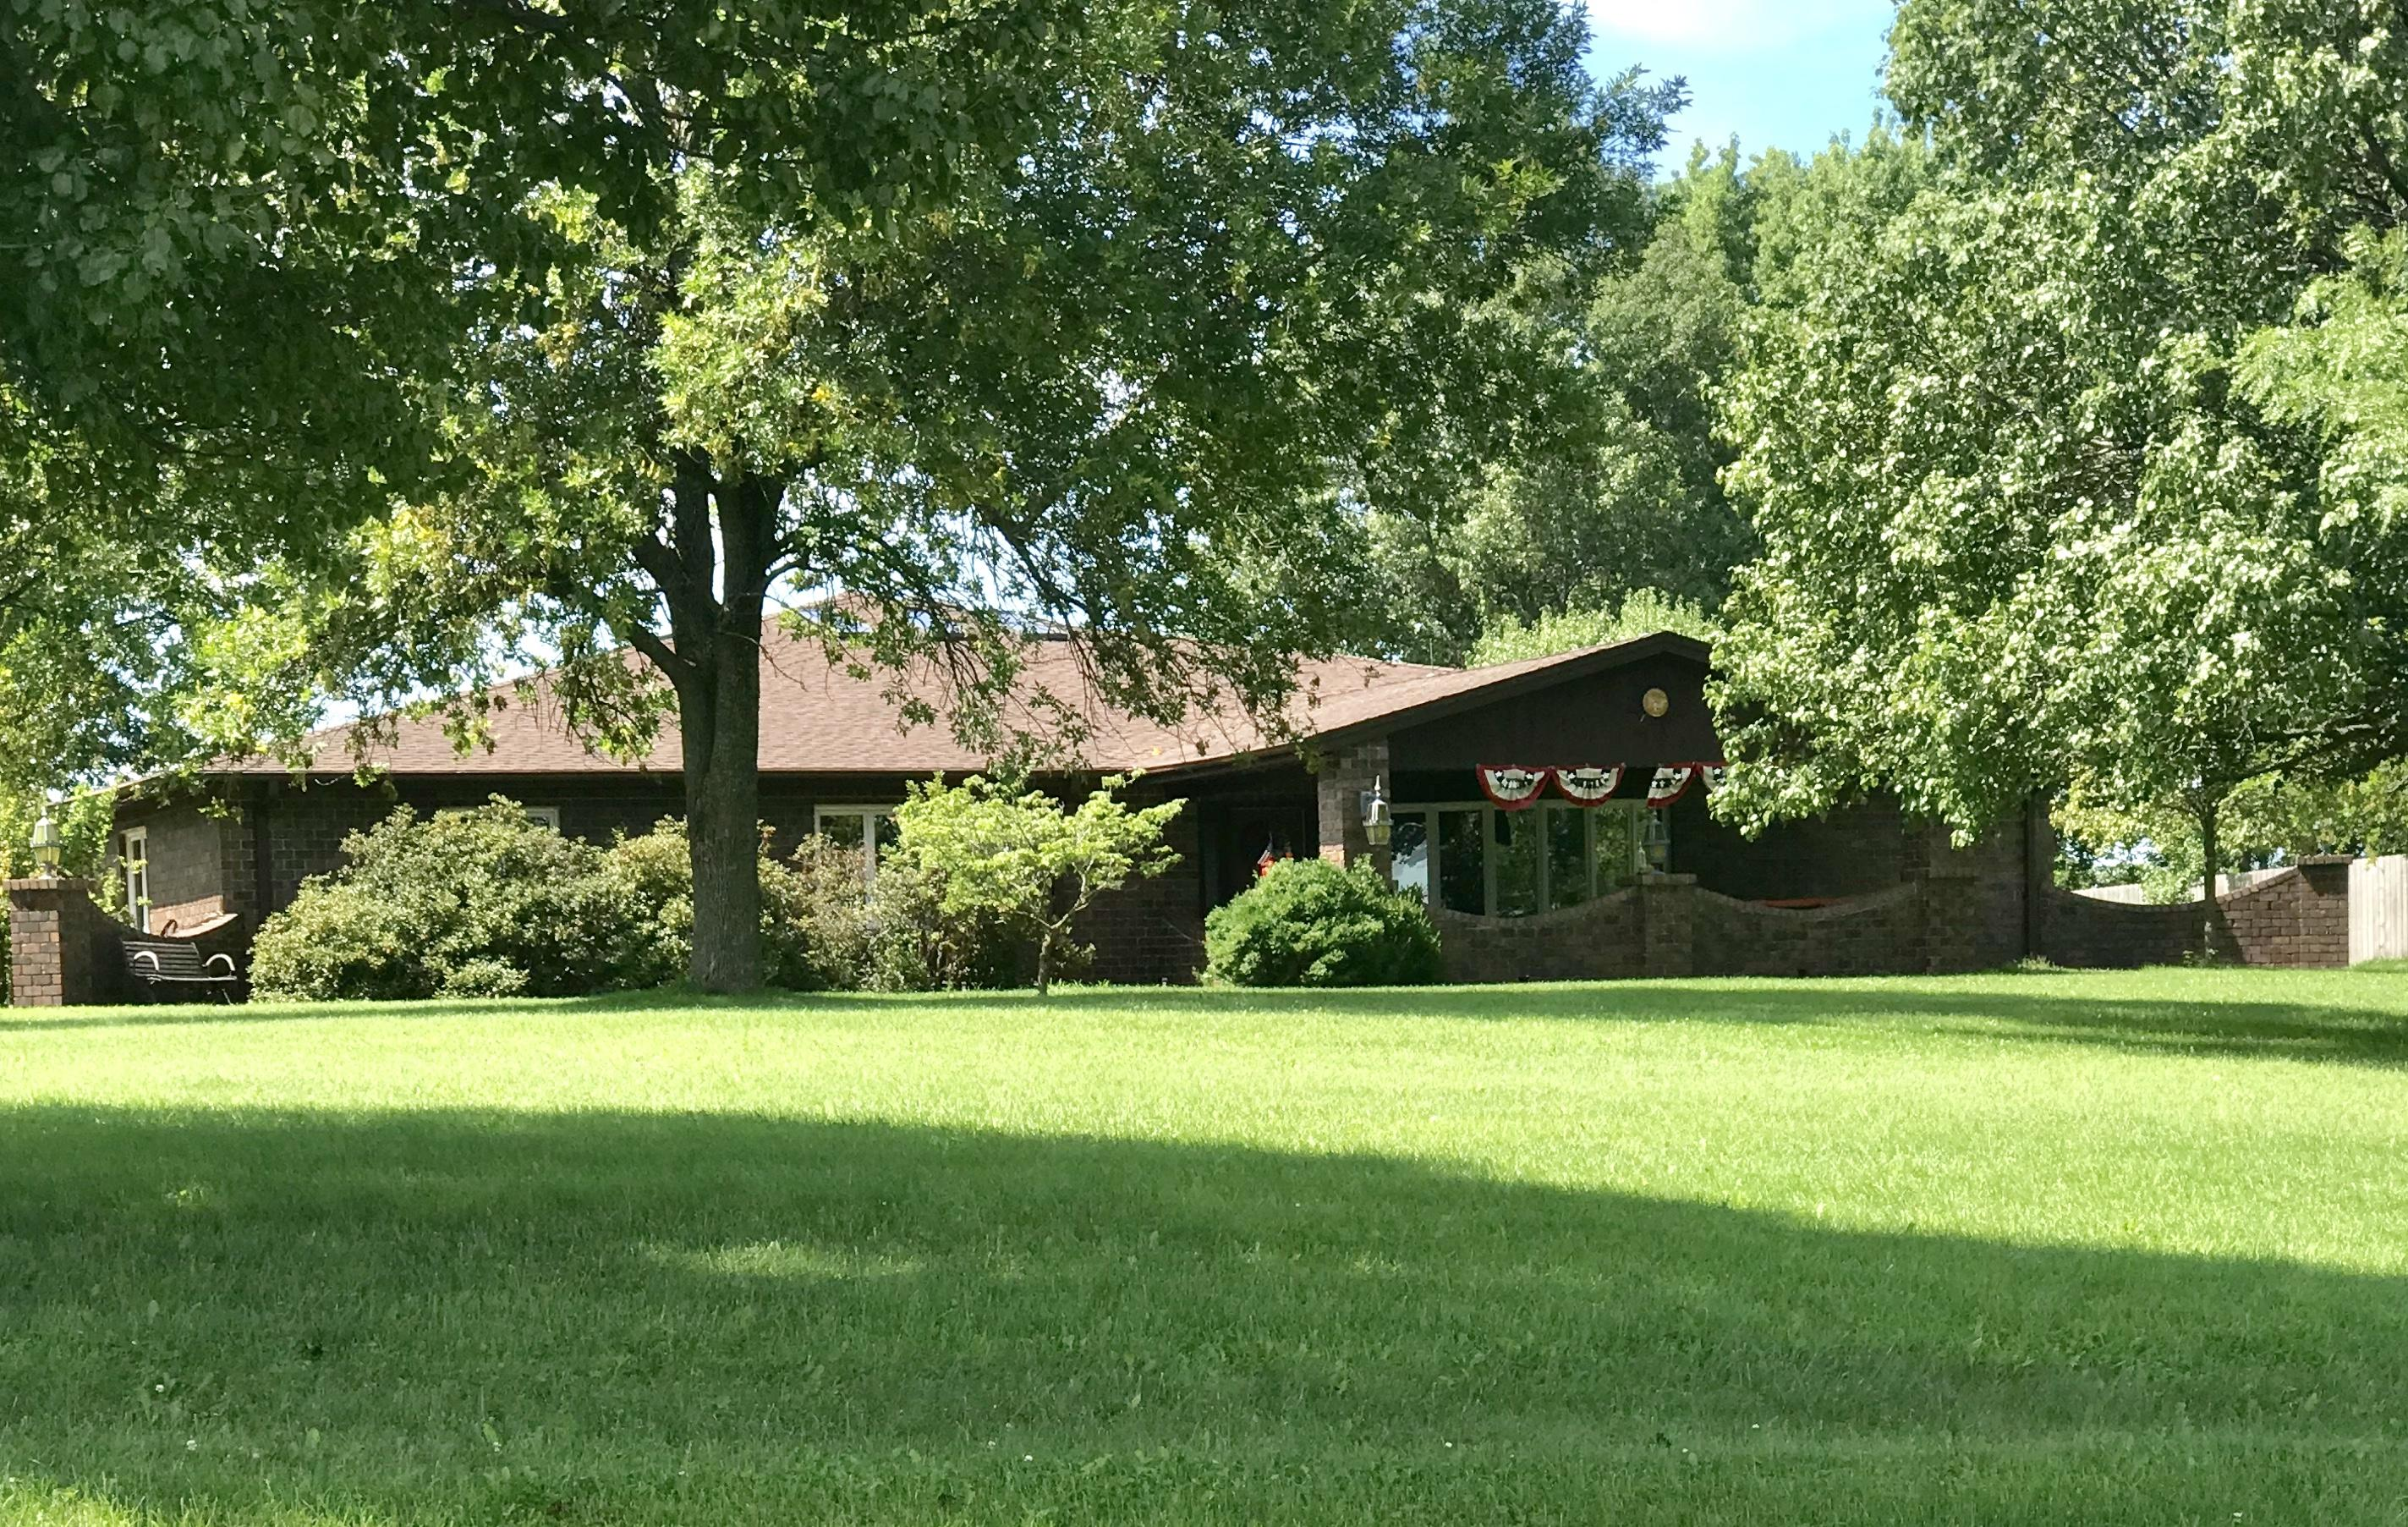 25101 STATE HWY EE, Maryville, Missouri 64468, 4 Bedrooms Bedrooms, ,3 BathroomsBathrooms,Residential,STATE HWY EE,4549